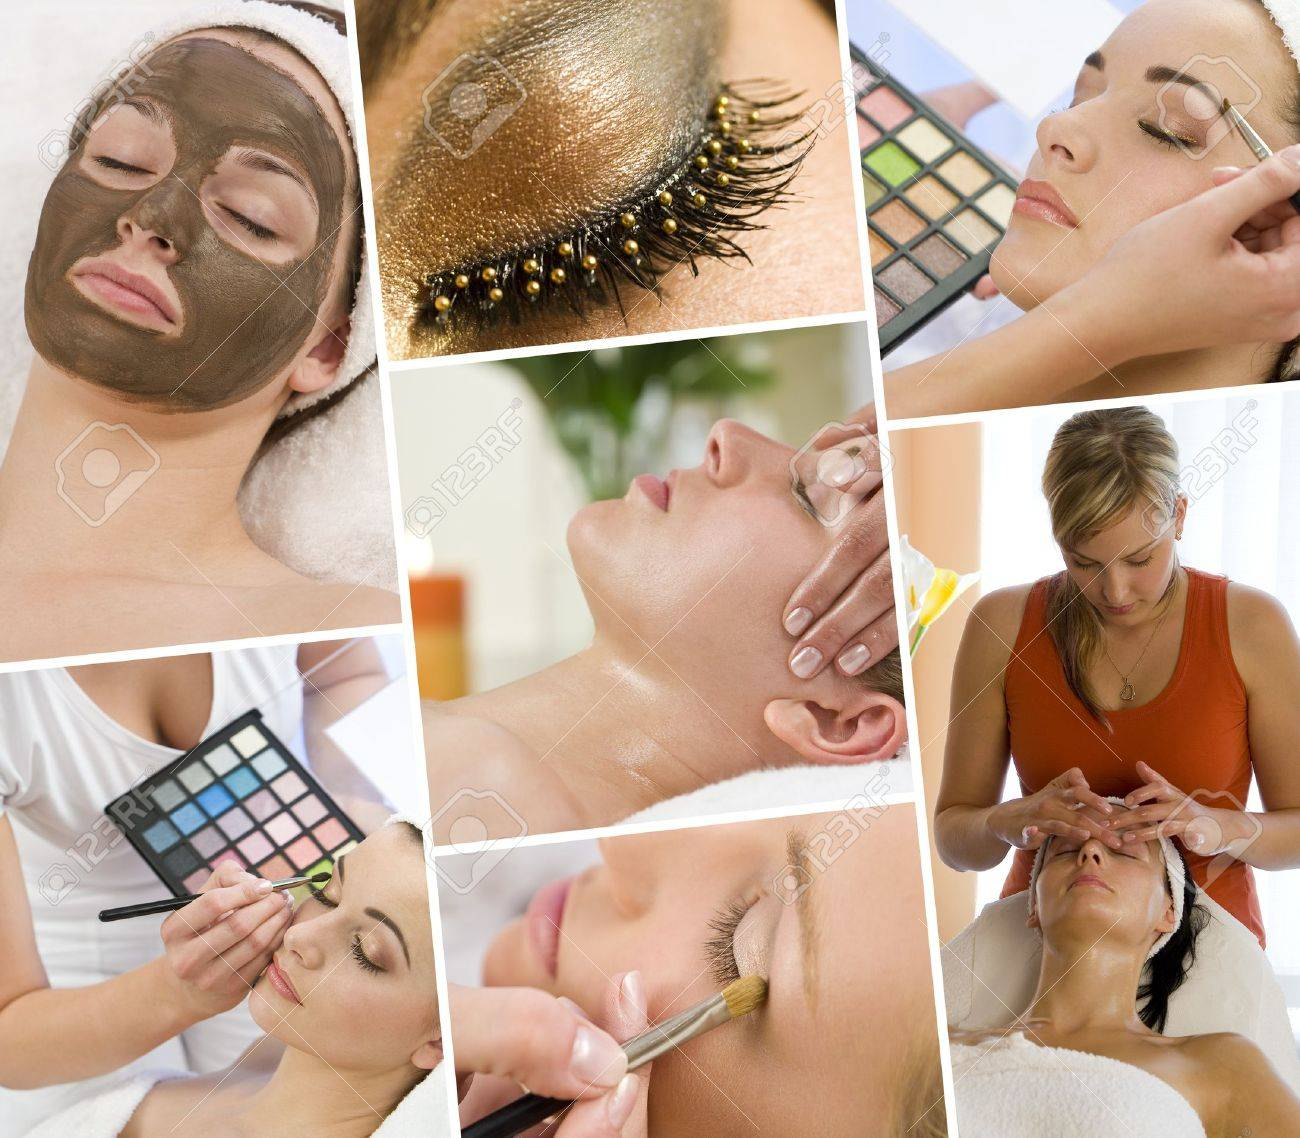 Montage of beautiful women relaxing at a health and beauty spa having massage treatments and their makeup applied by a beautician Stock Photo - 15587579